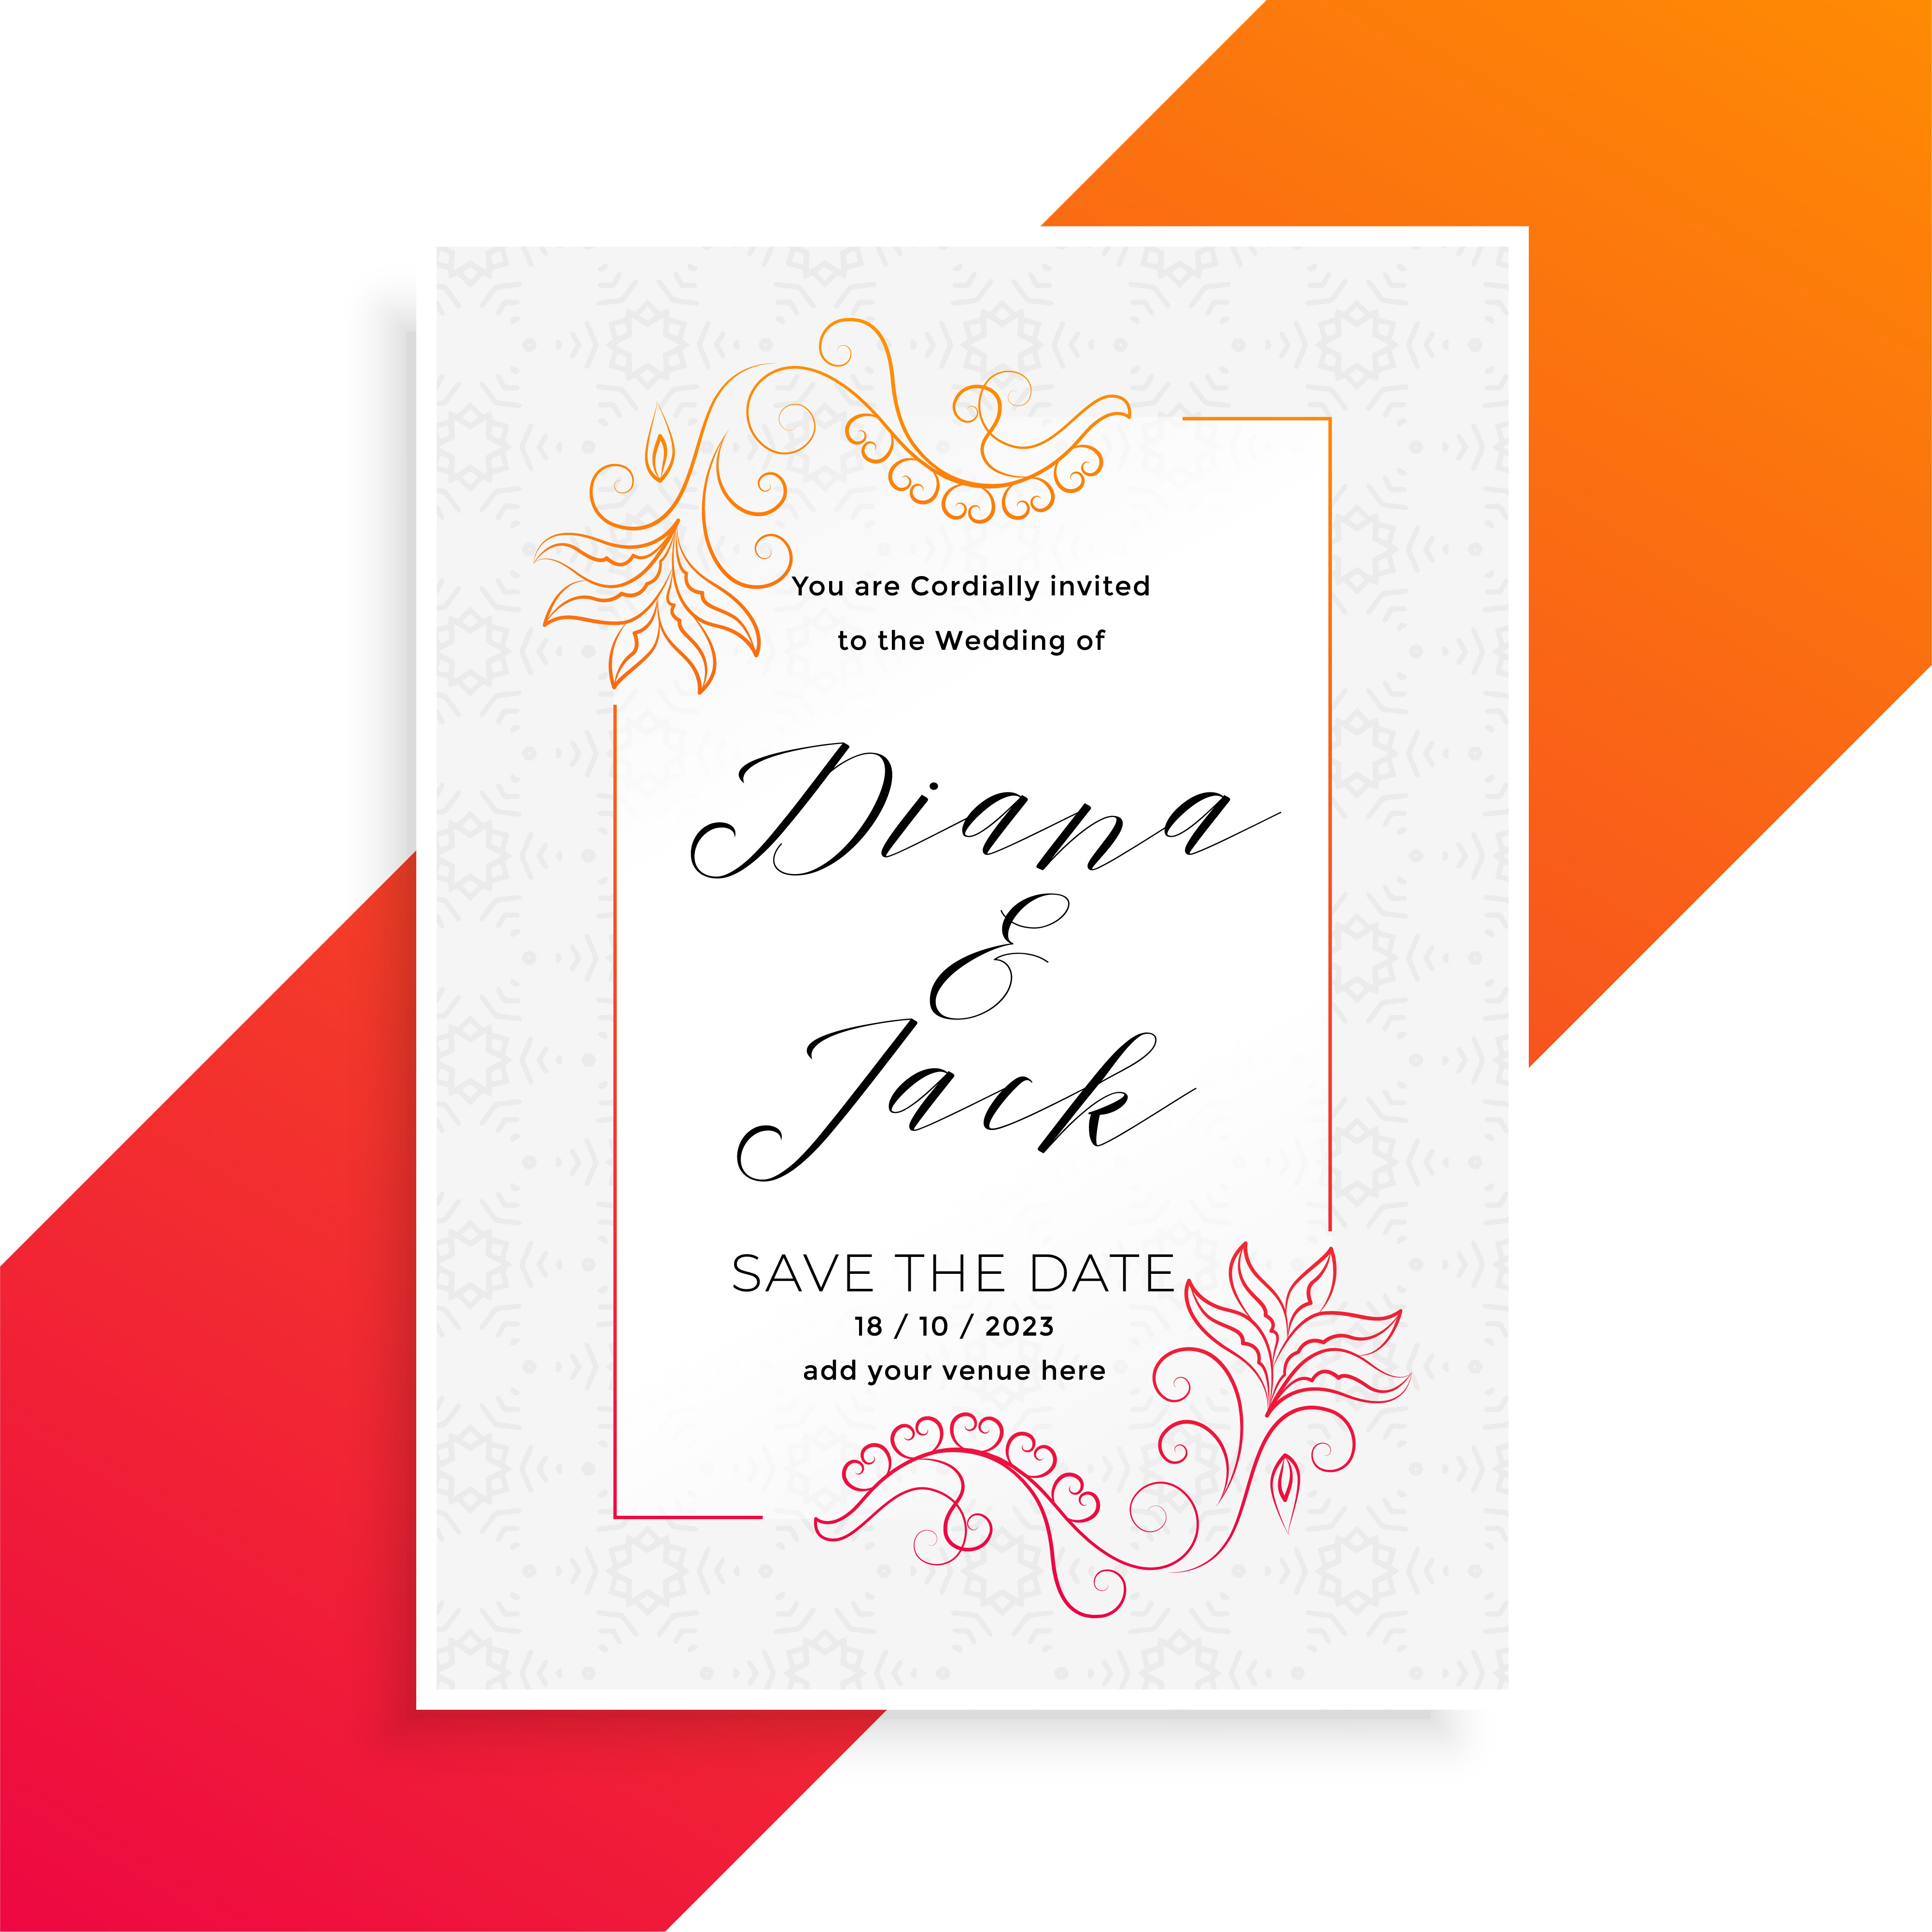 Lovely Floral Wedding Invitation Card Design Template